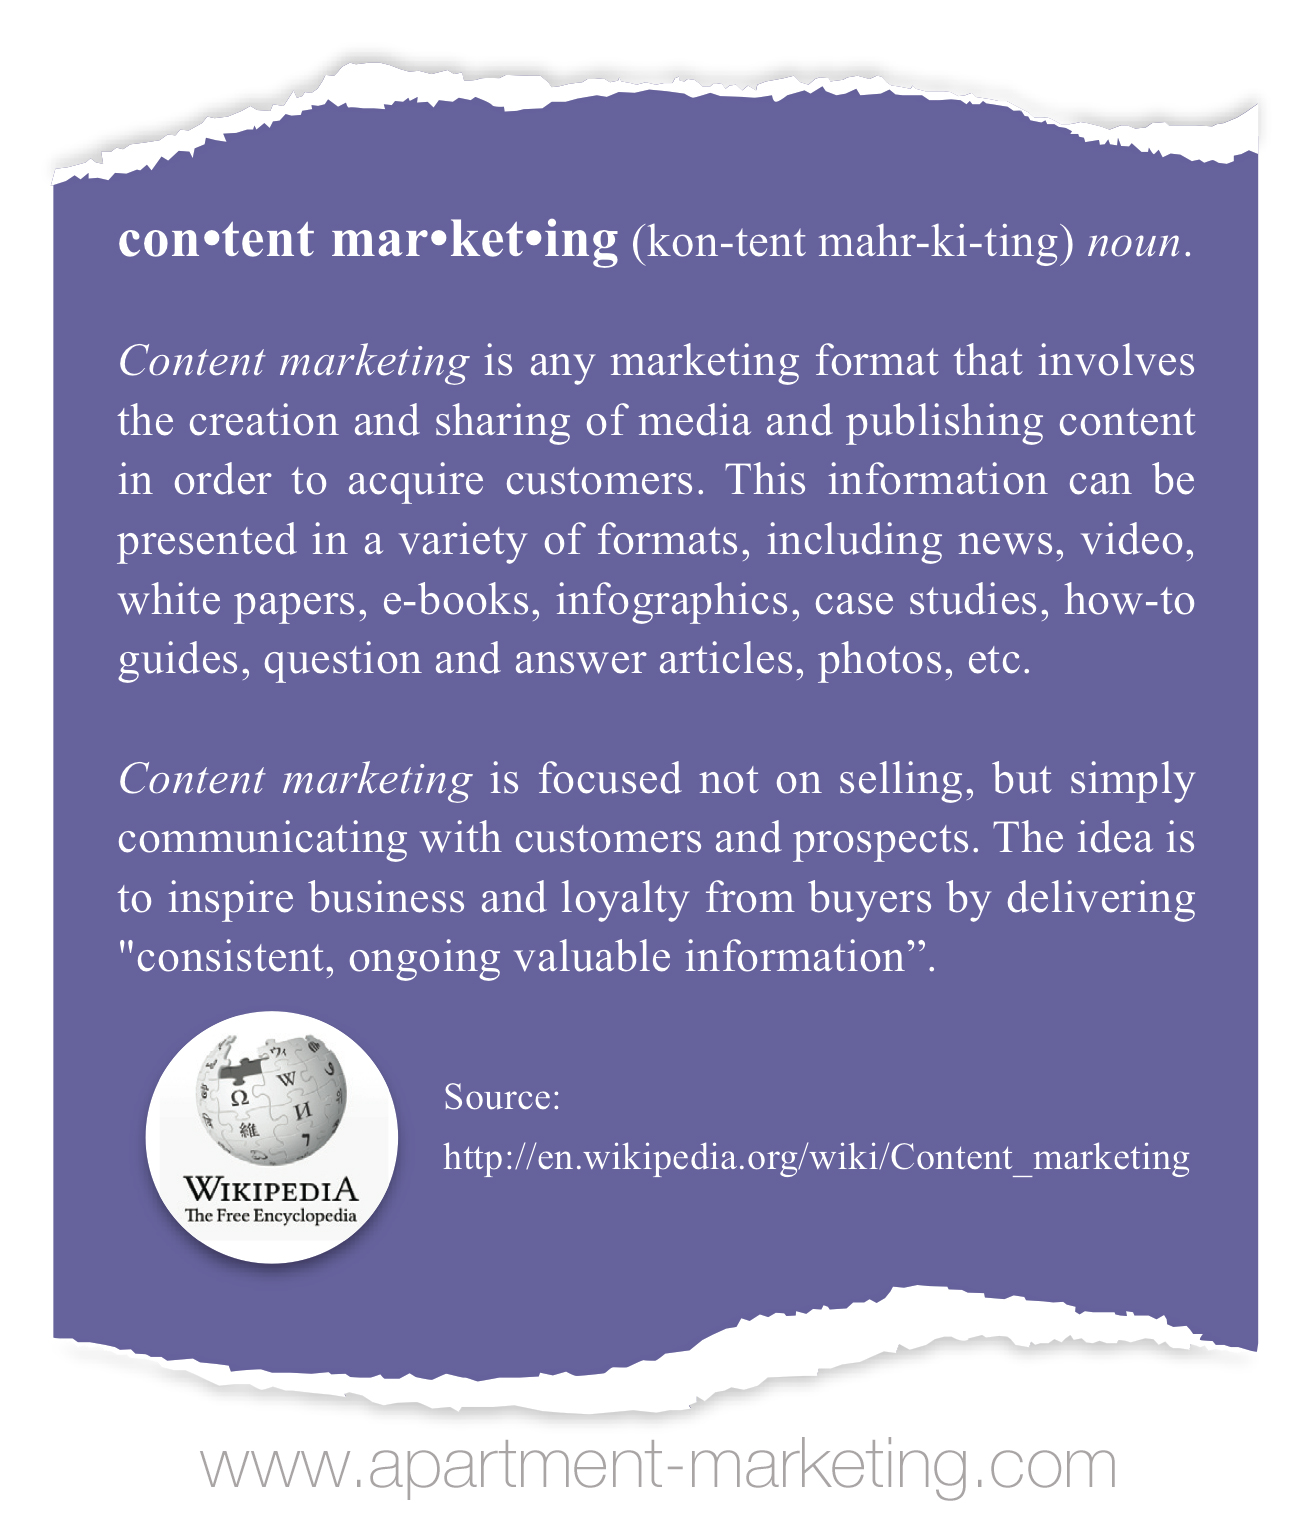 content-marketing-apartments